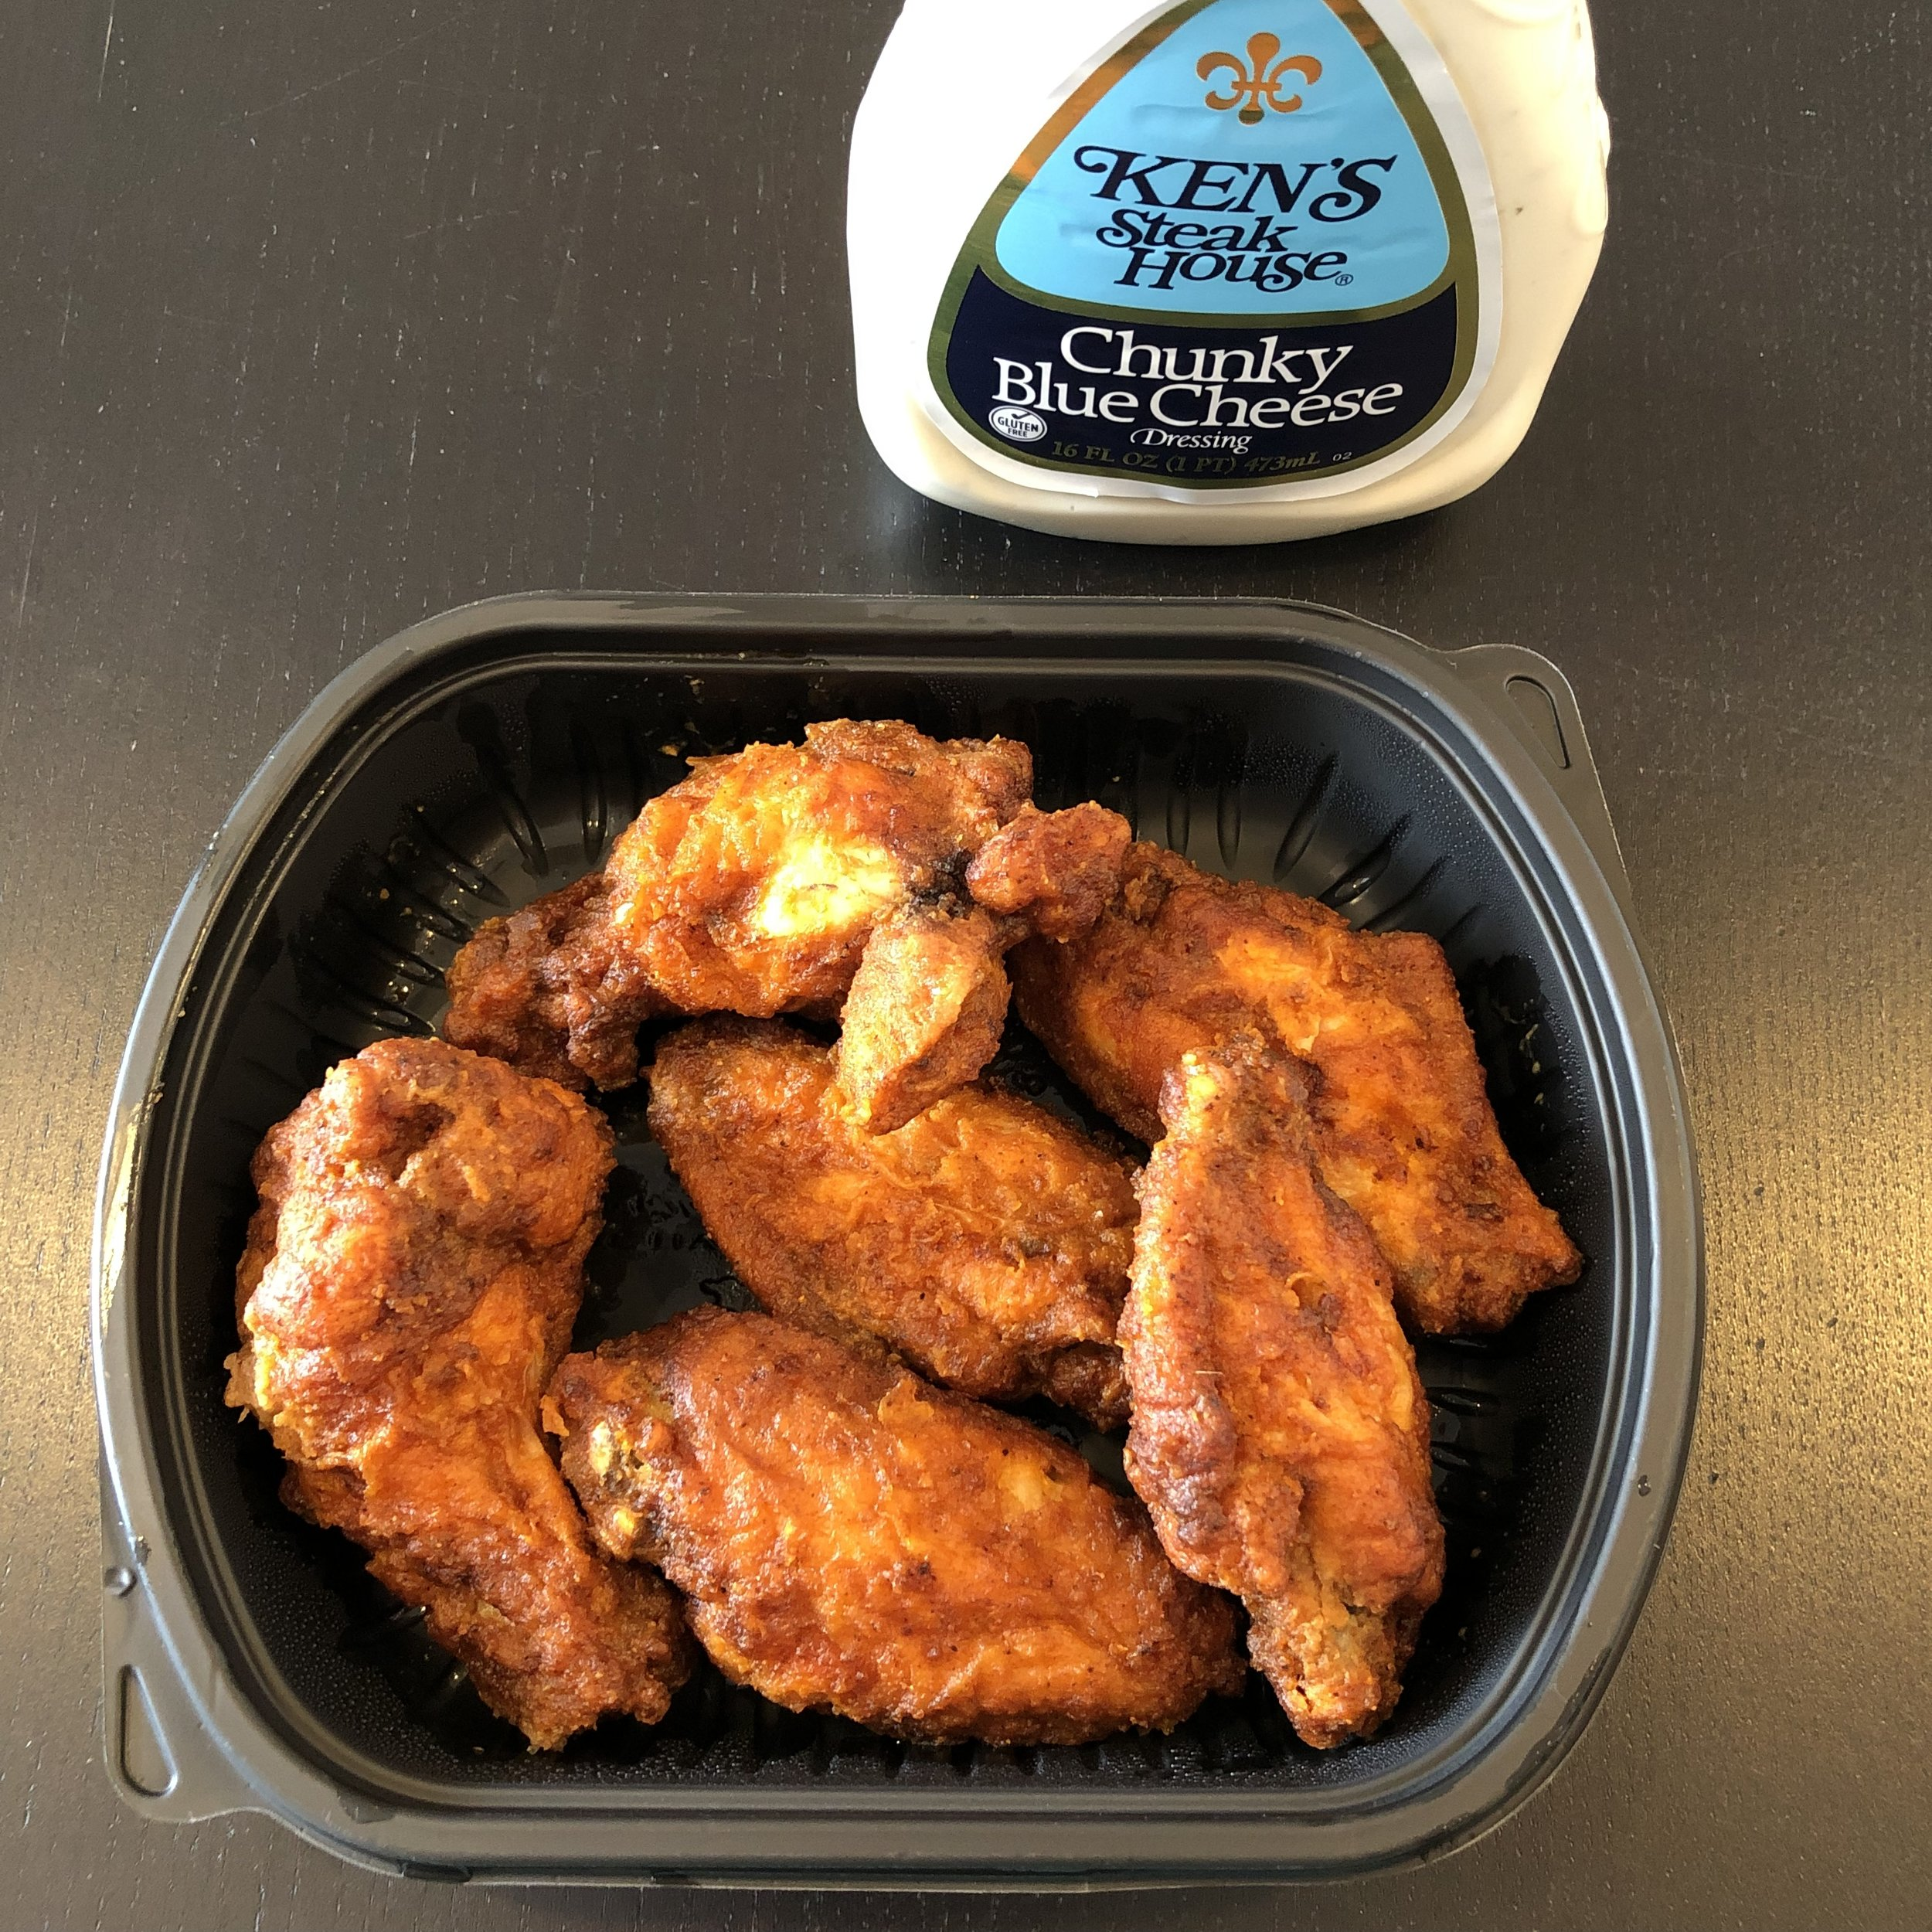 Buffalo wings at Key Food in their secret sauce. Blue cheese available on the shelf nearby.